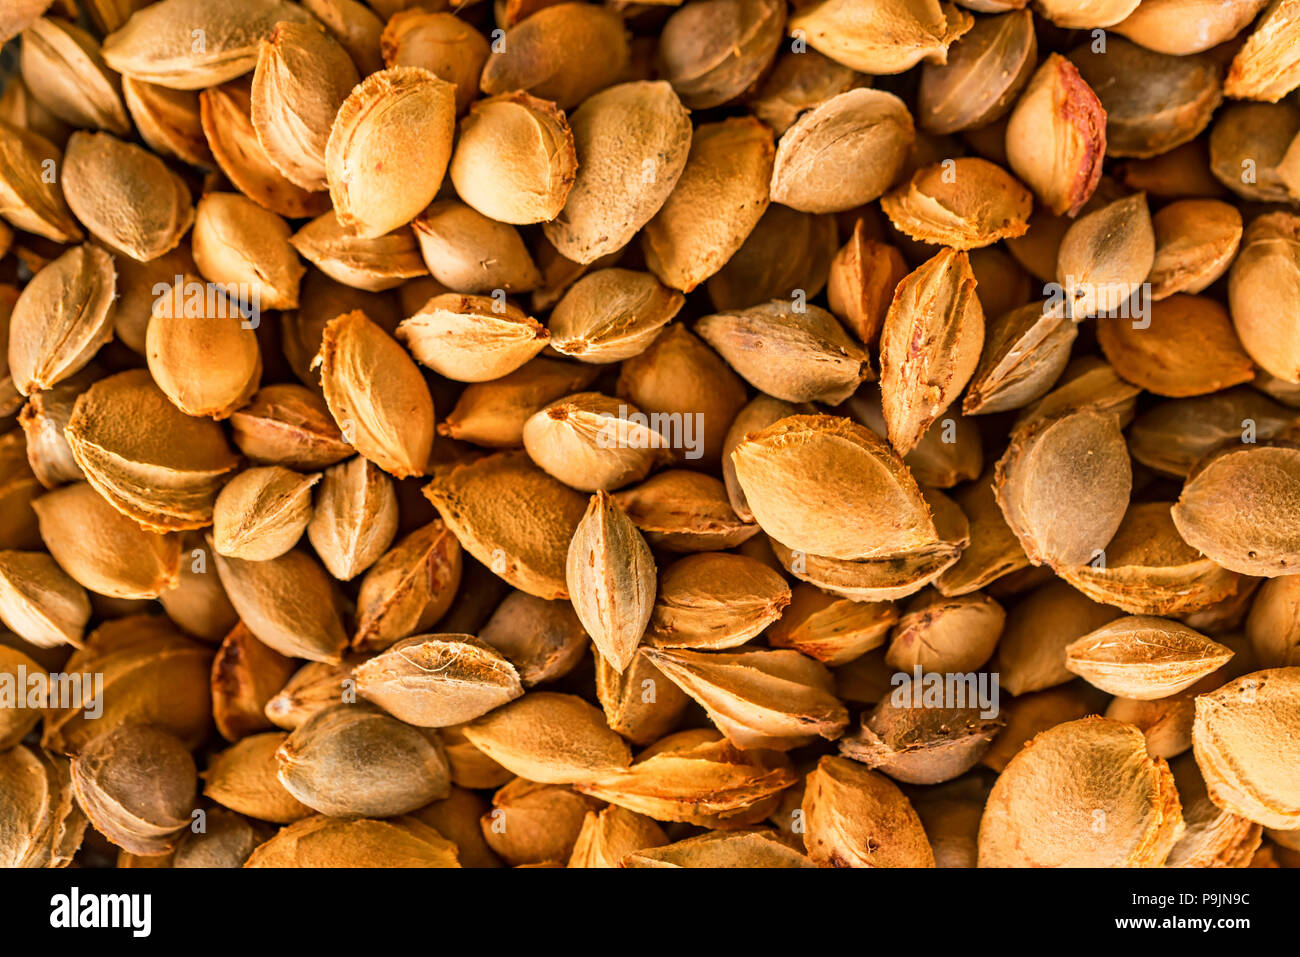 Apricot seeds background - Stock Image